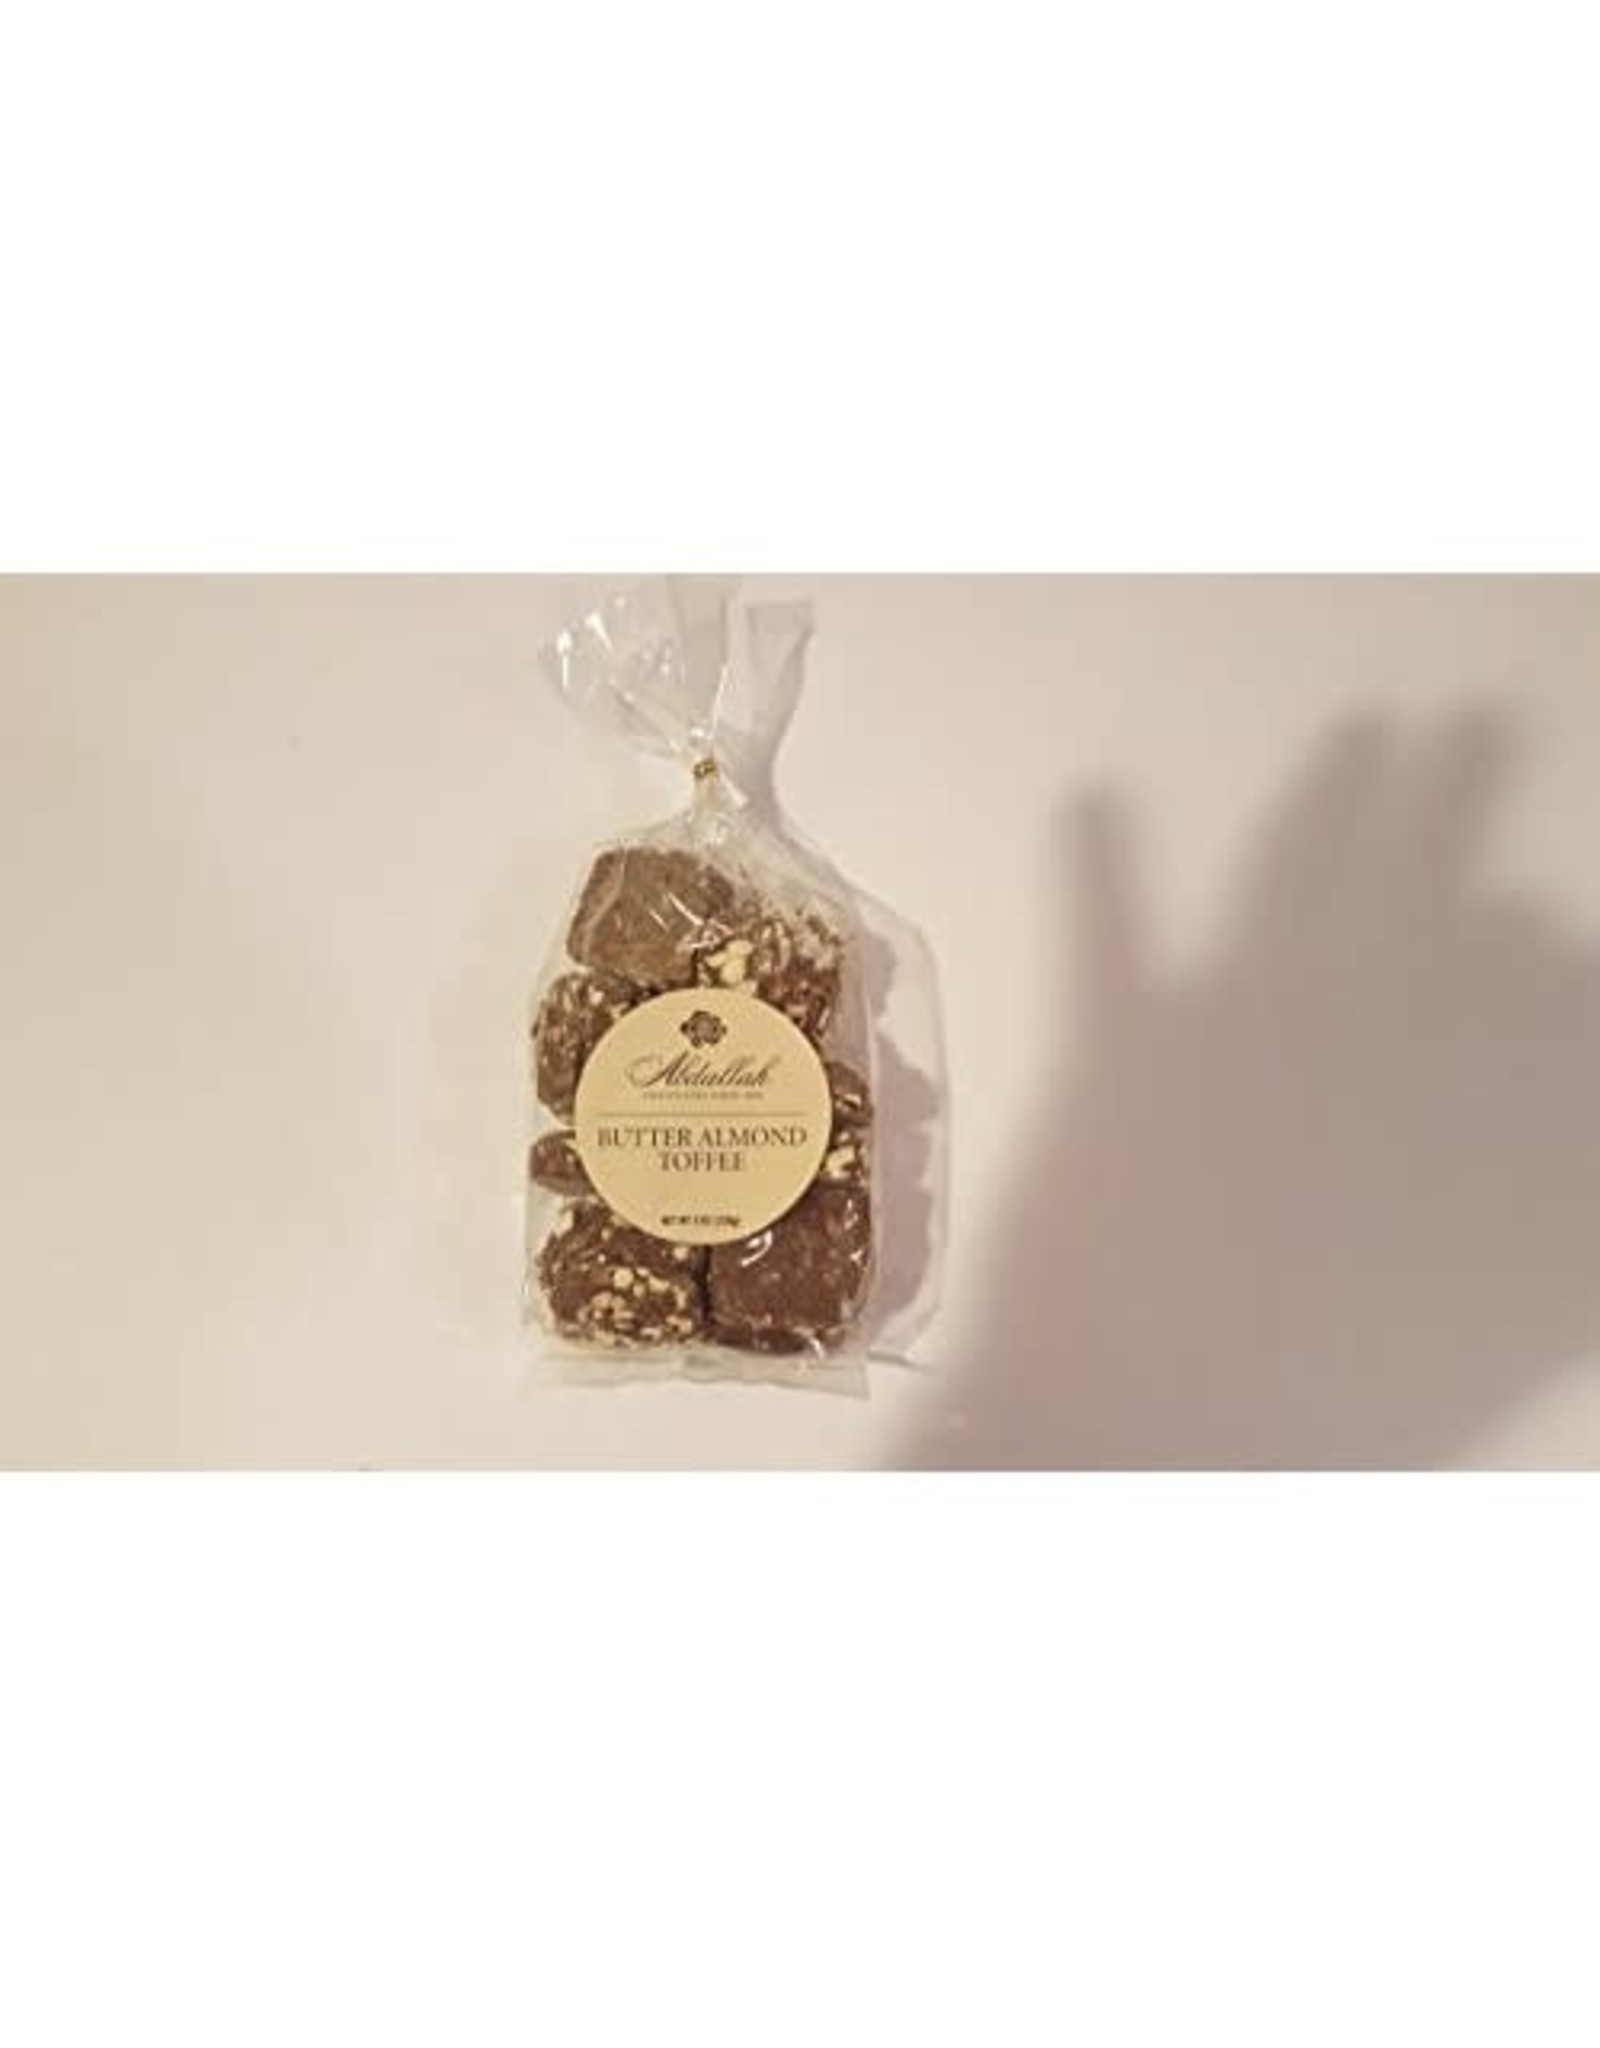 Abdallah Candy, Milk Chocolate Butter Almond Toffee, 7oz